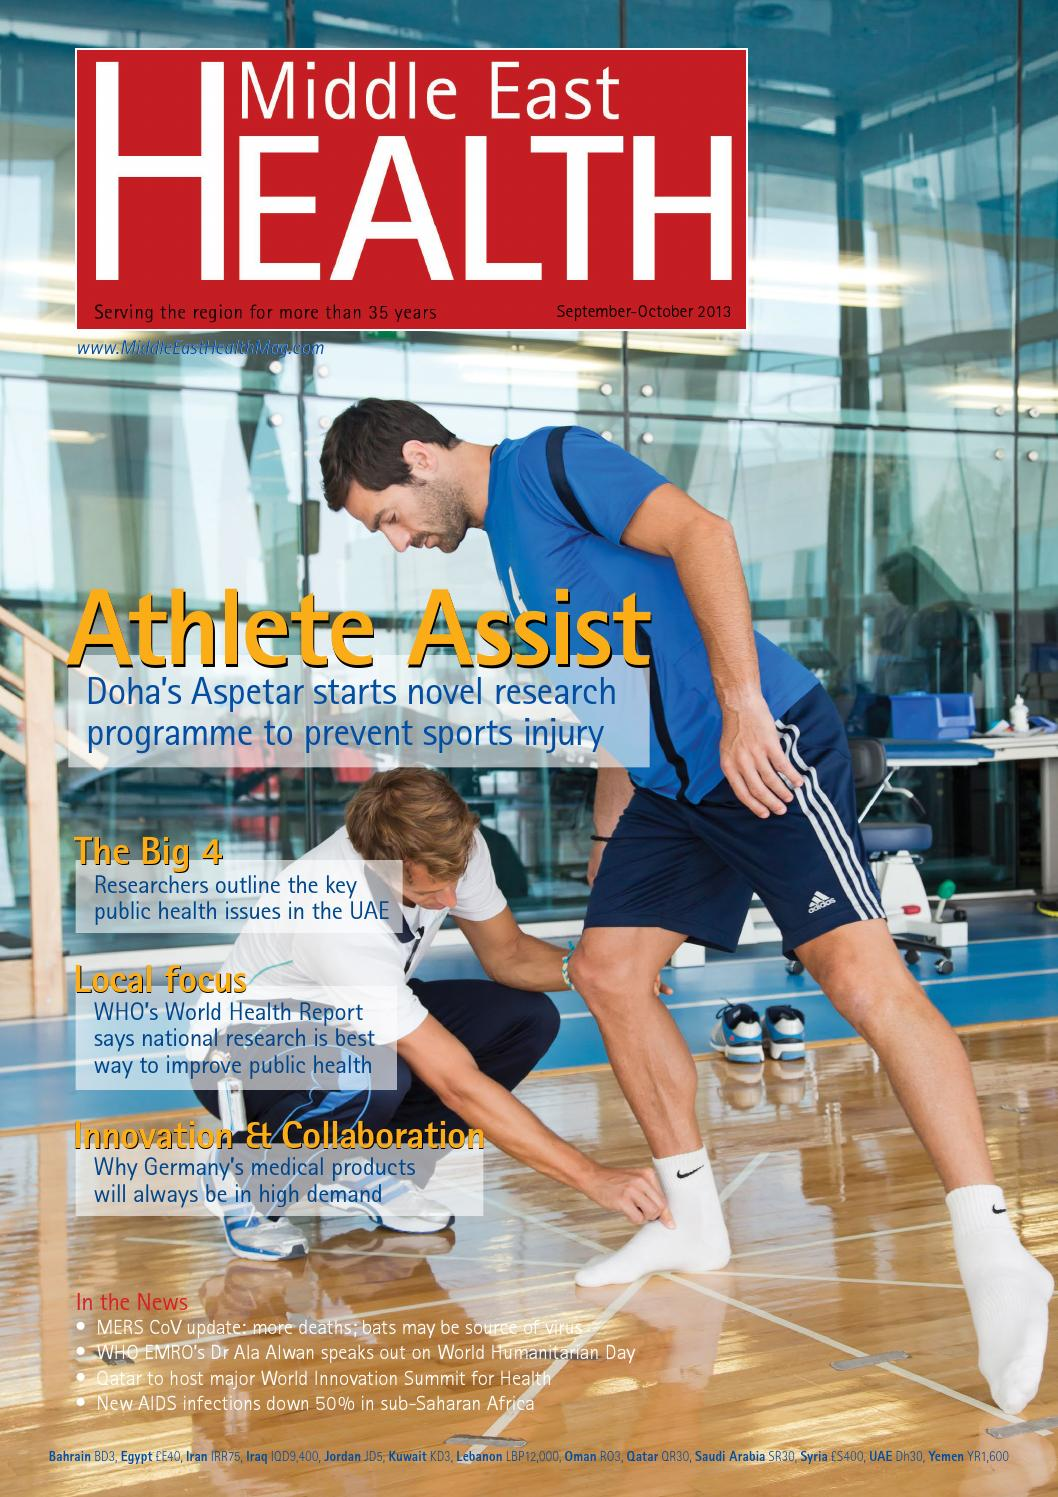 Middle East Health Magazine - Sep/Oct 2013 by Middle East